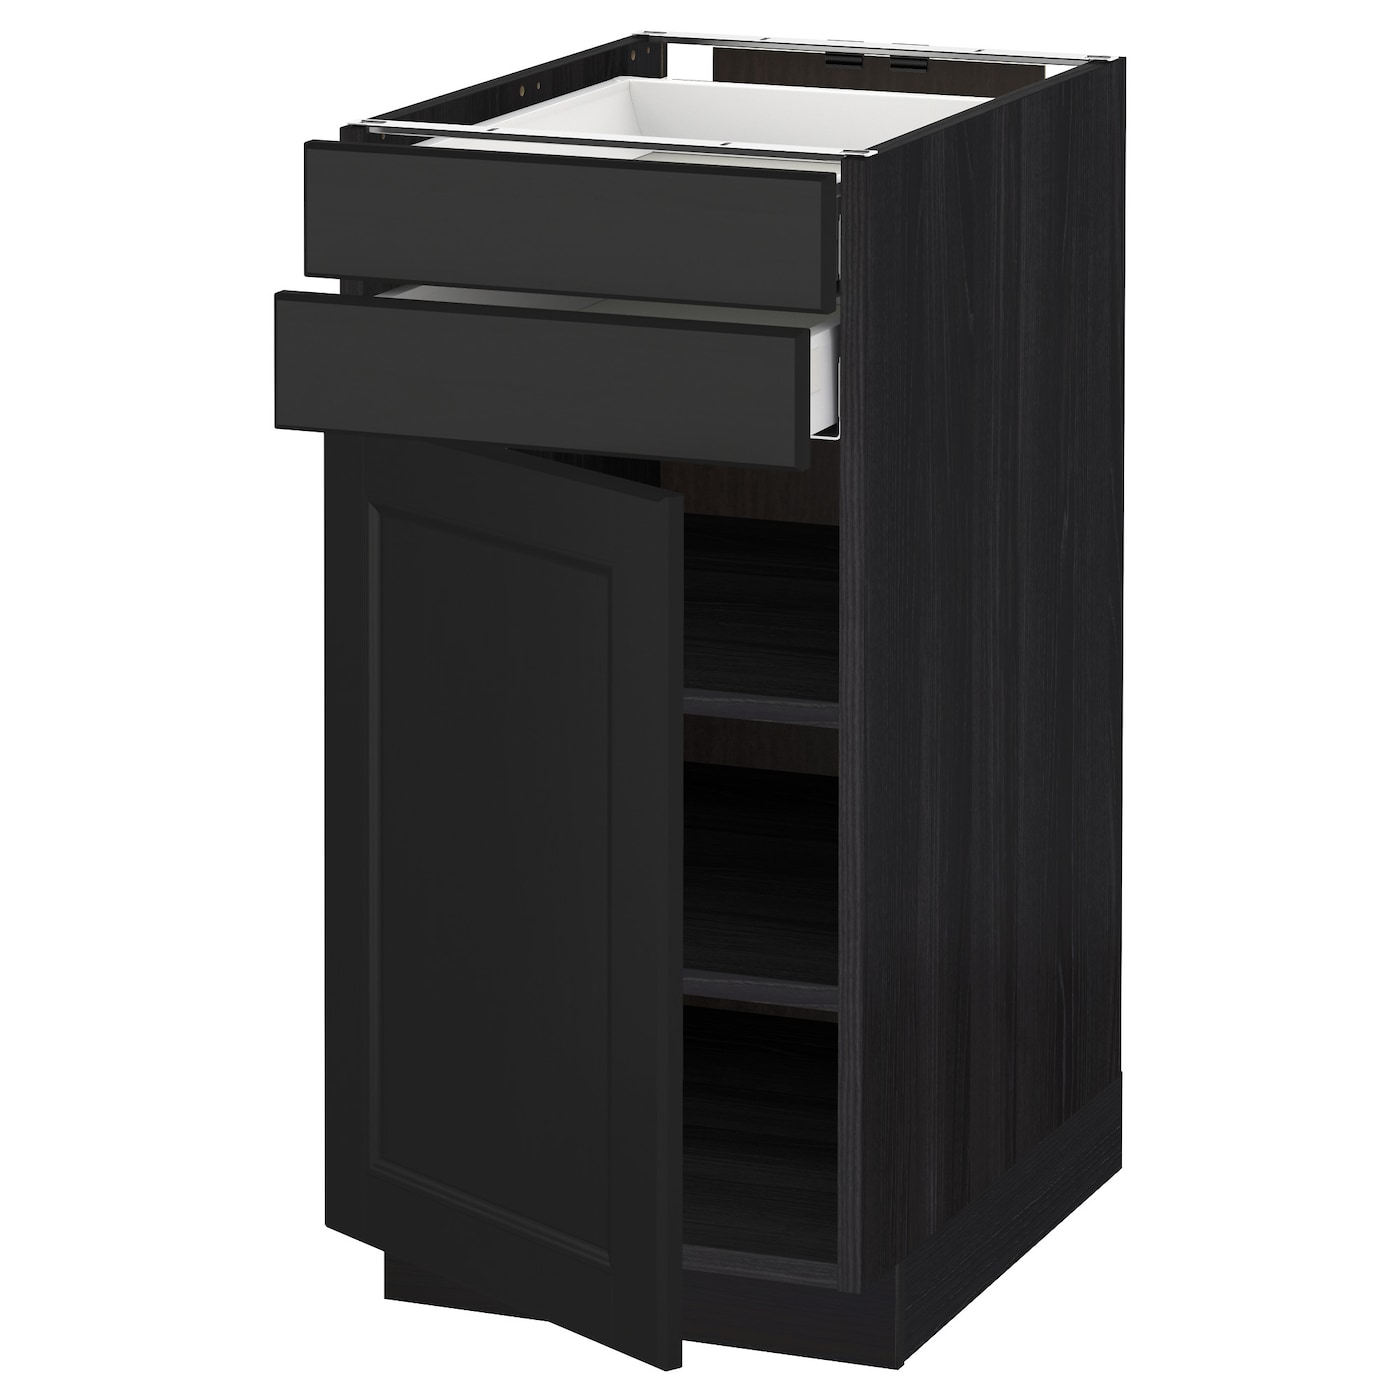 black kitchen base cabinets metod maximera base cabinet w door 2 drawers black laxarby 12375